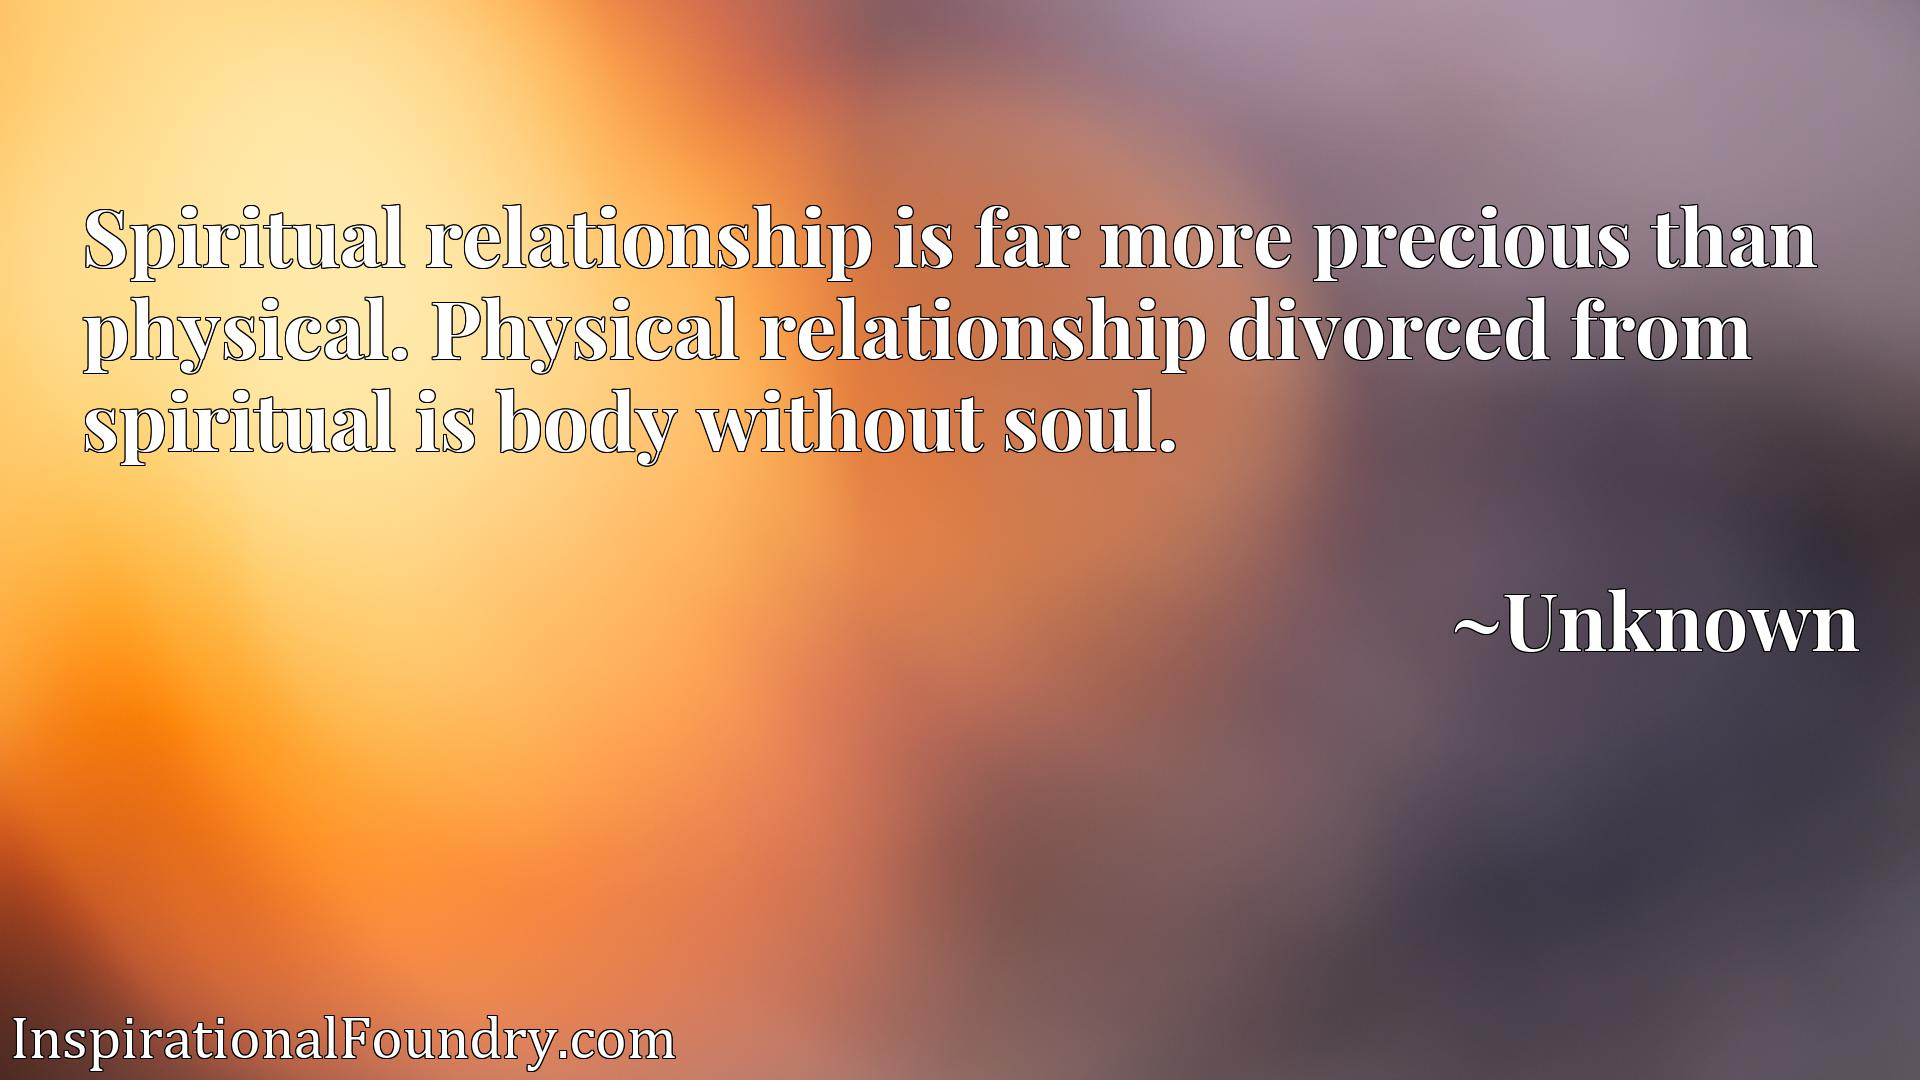 Spiritual relationship is far more precious than physical. Physical relationship divorced from spiritual is body without soul.